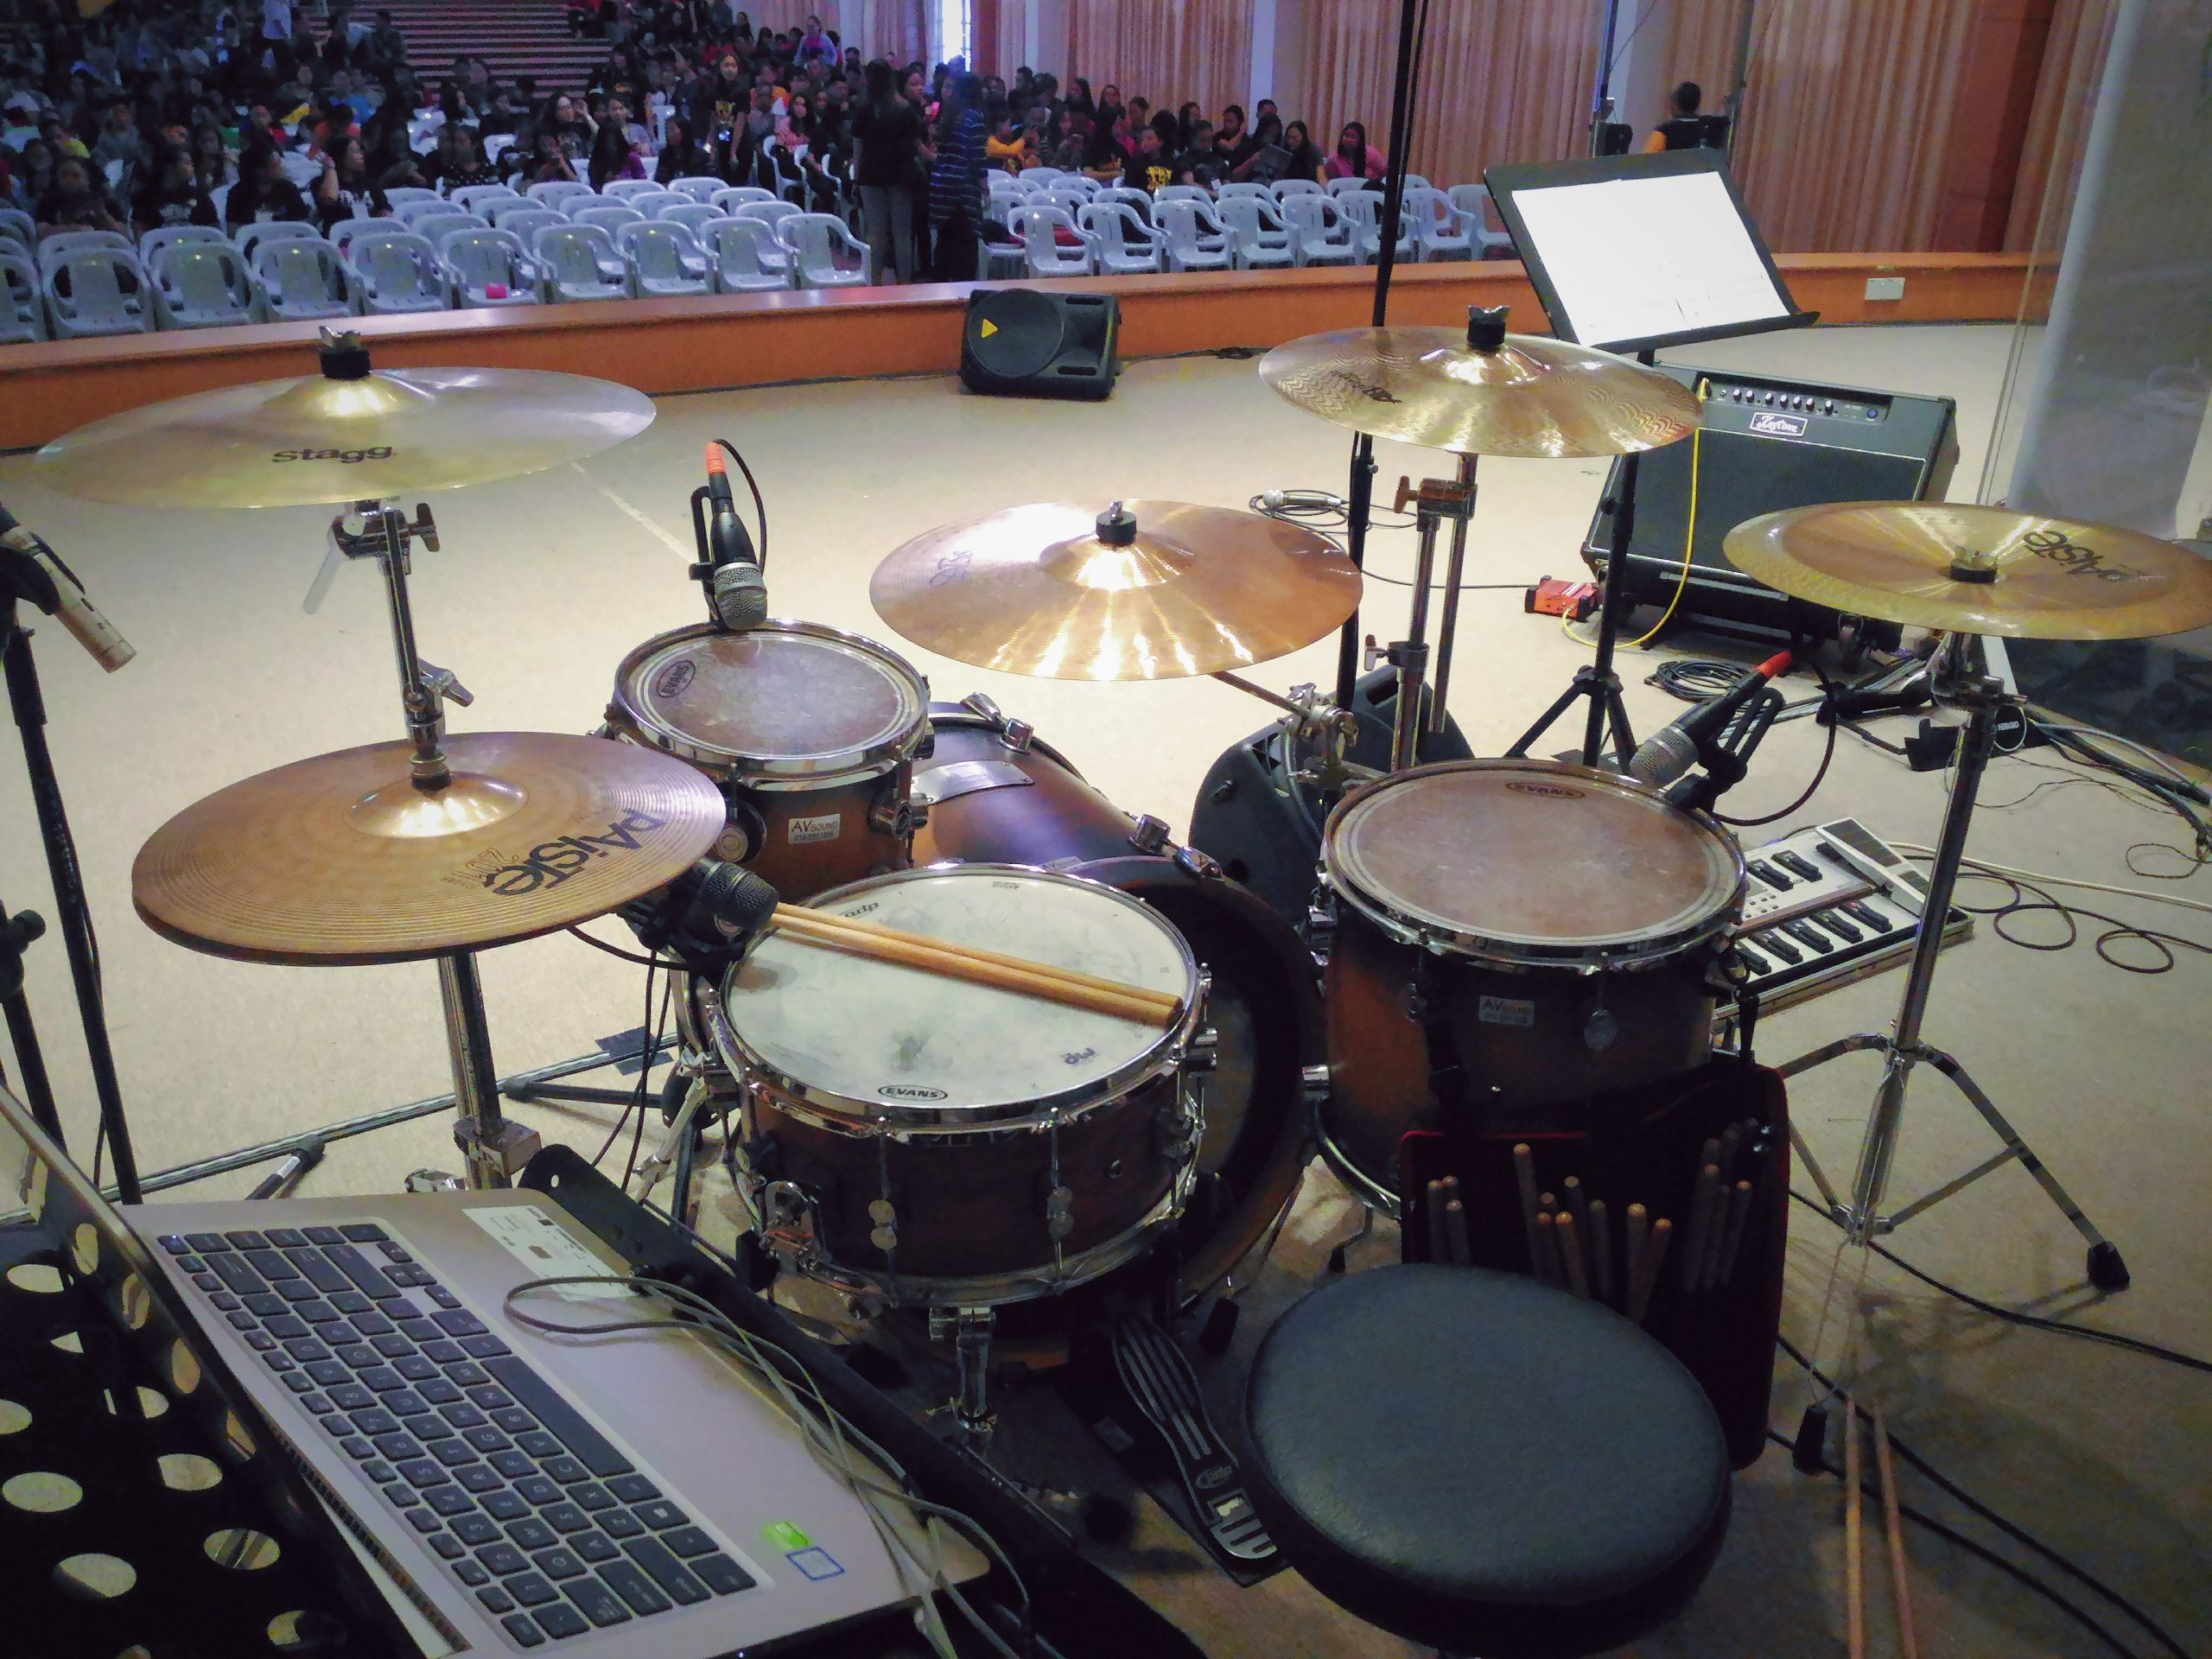 Photo was taken during CO17(a Christian youth conference) at BEM Hosanna, Sibu. I was the drummer! Such a fun kit to play!